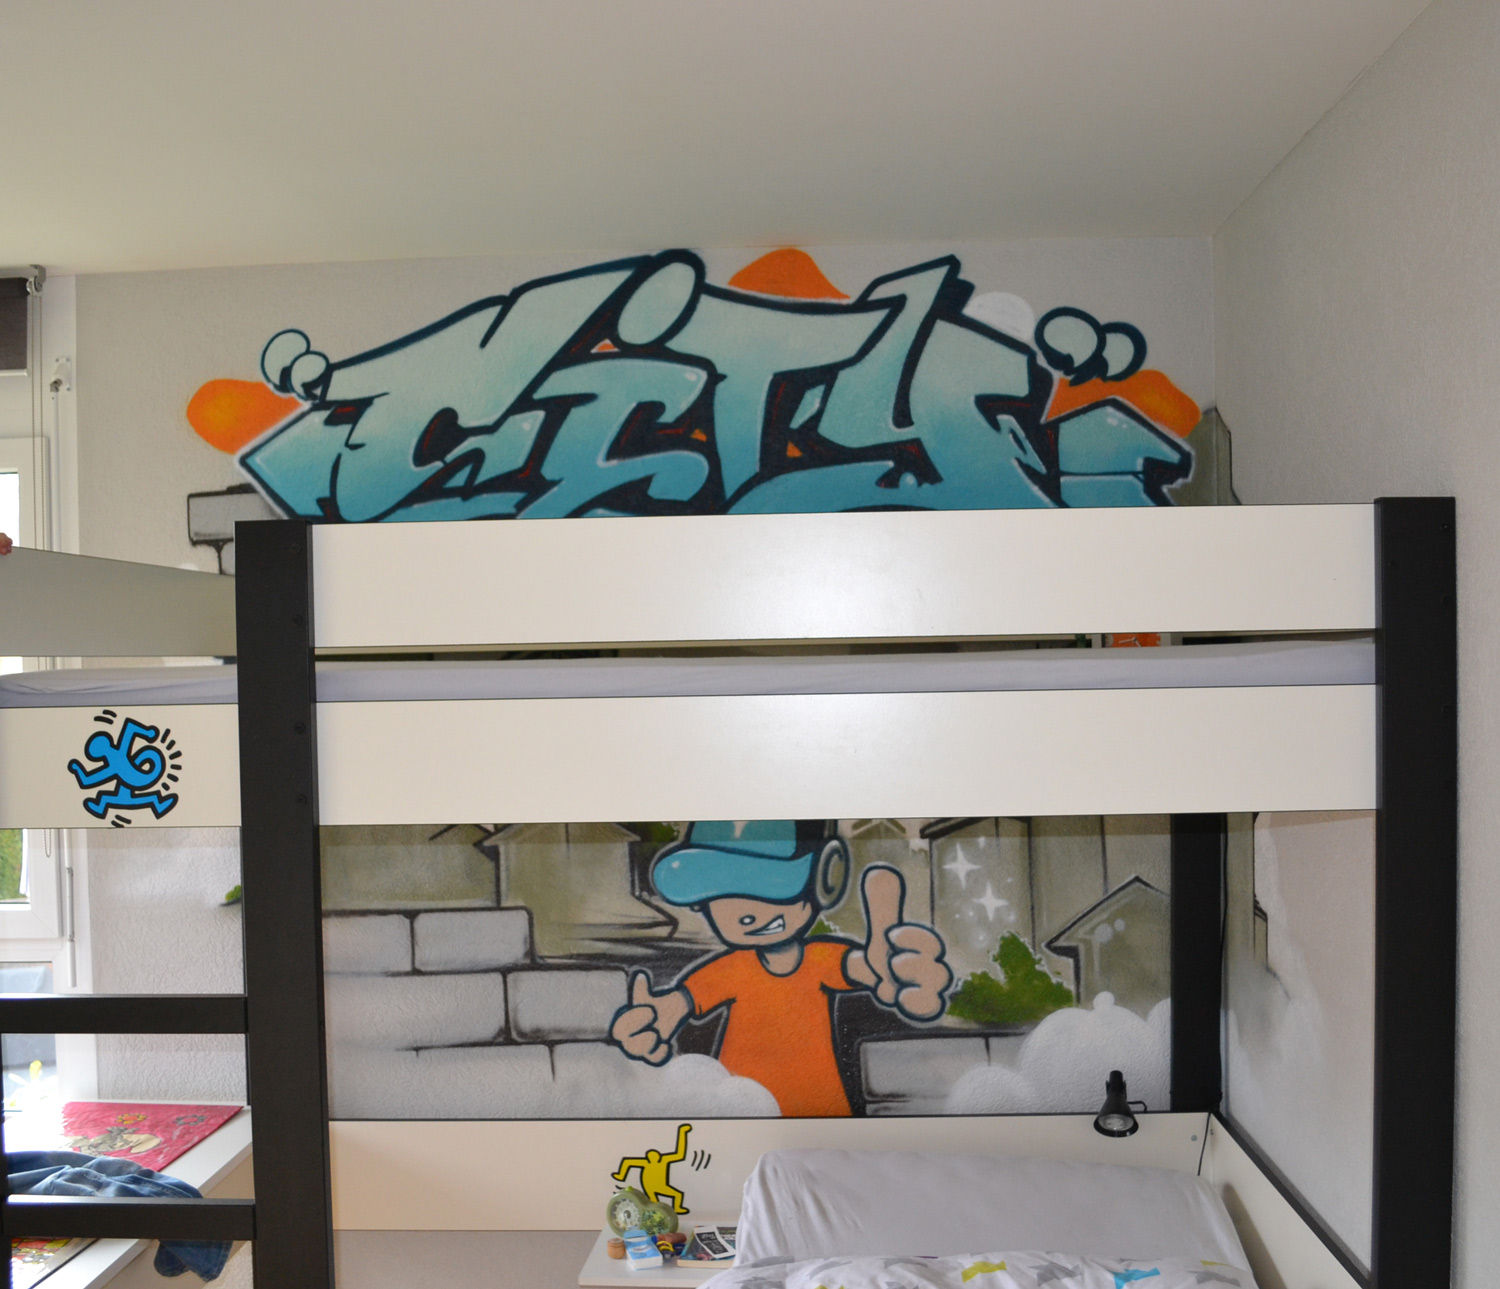 d co graffiti pour une chambre d 39 enfant lausanne une ambiance hip hop garantie pour le. Black Bedroom Furniture Sets. Home Design Ideas